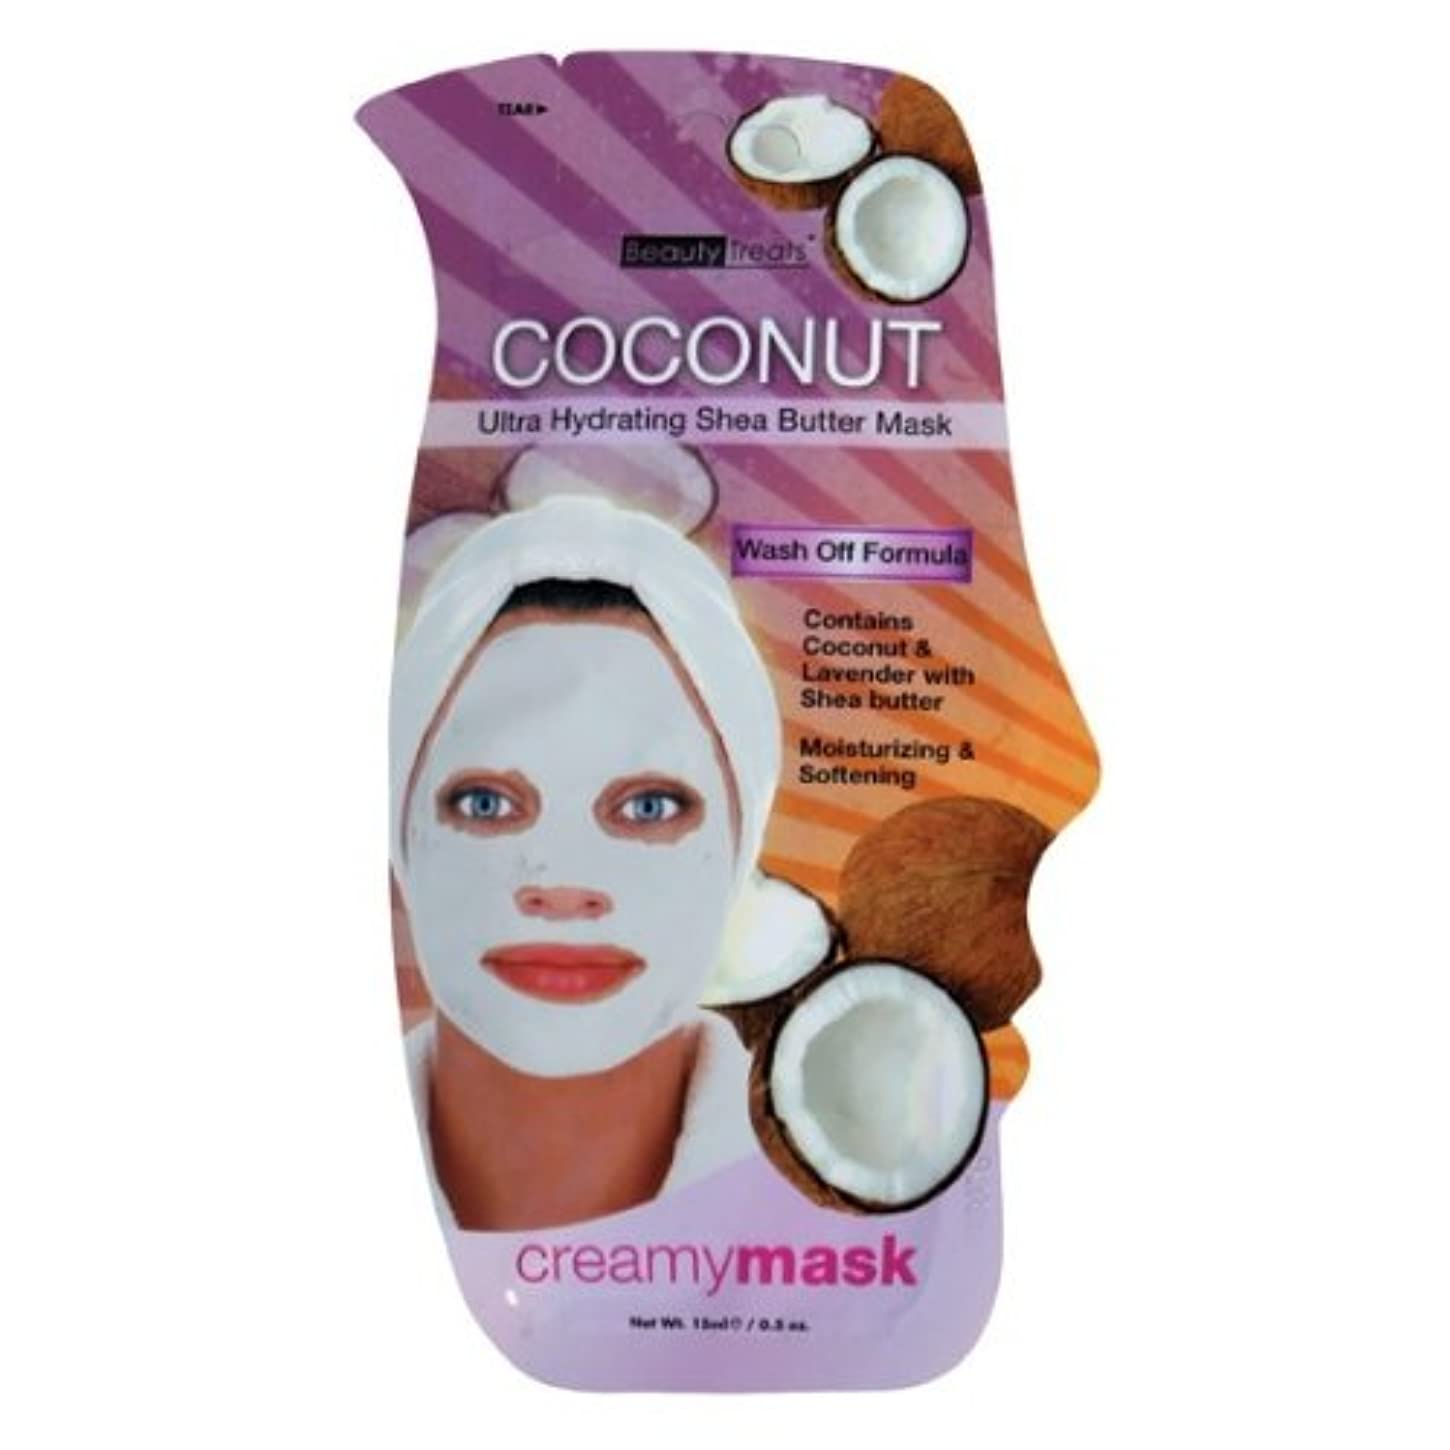 プランテーション娯楽馬力(6 Pack) BEAUTY TREATS Coconut Ultra Hydrating Shea Butter Mask - Coconut (並行輸入品)